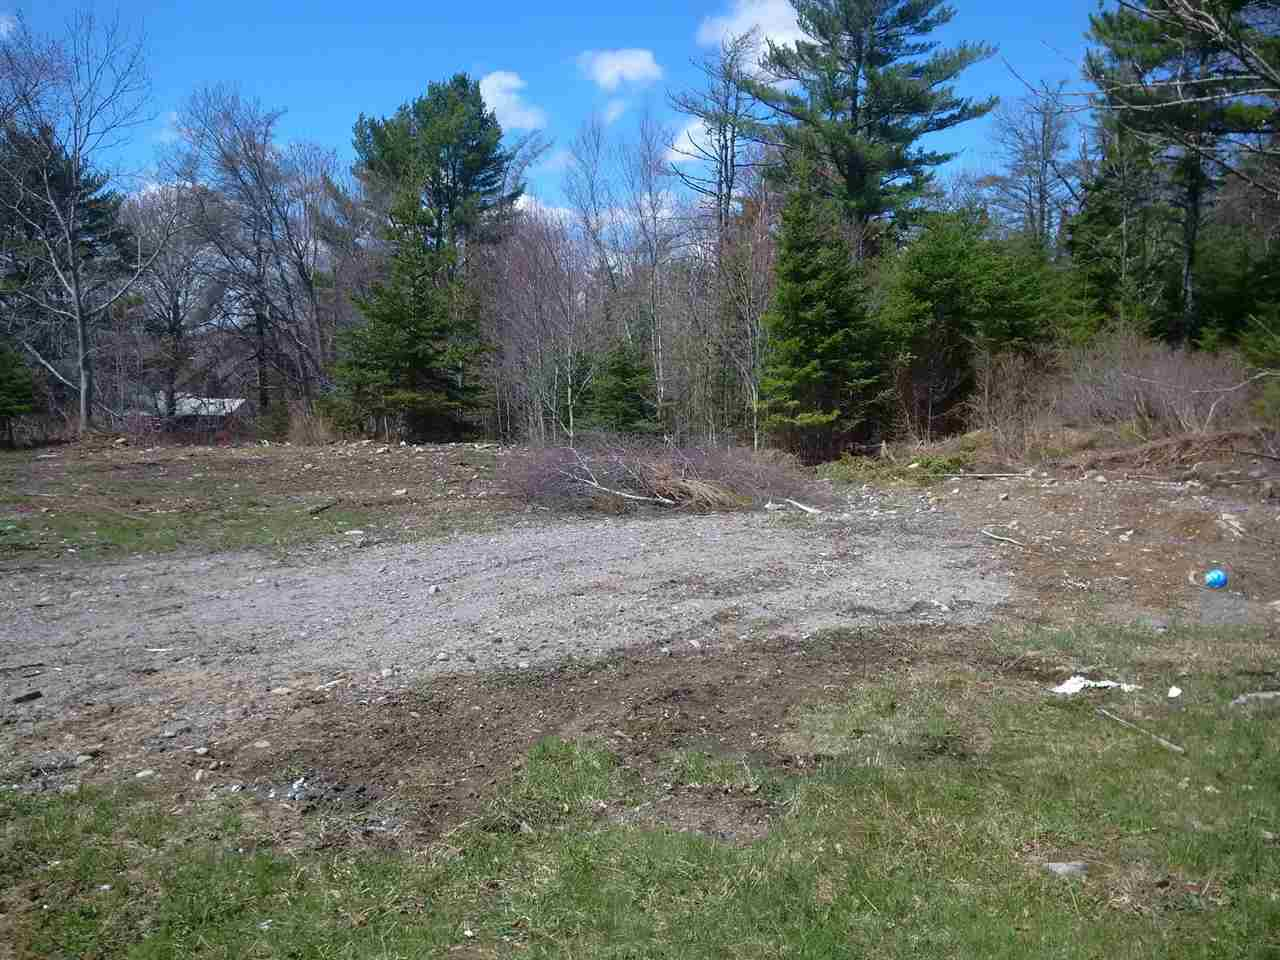 Photo 2: Photos: 5720 Highway 3 in East Jordan: 407-Shelburne County Vacant Land for sale (South Shore)  : MLS®# 201708962